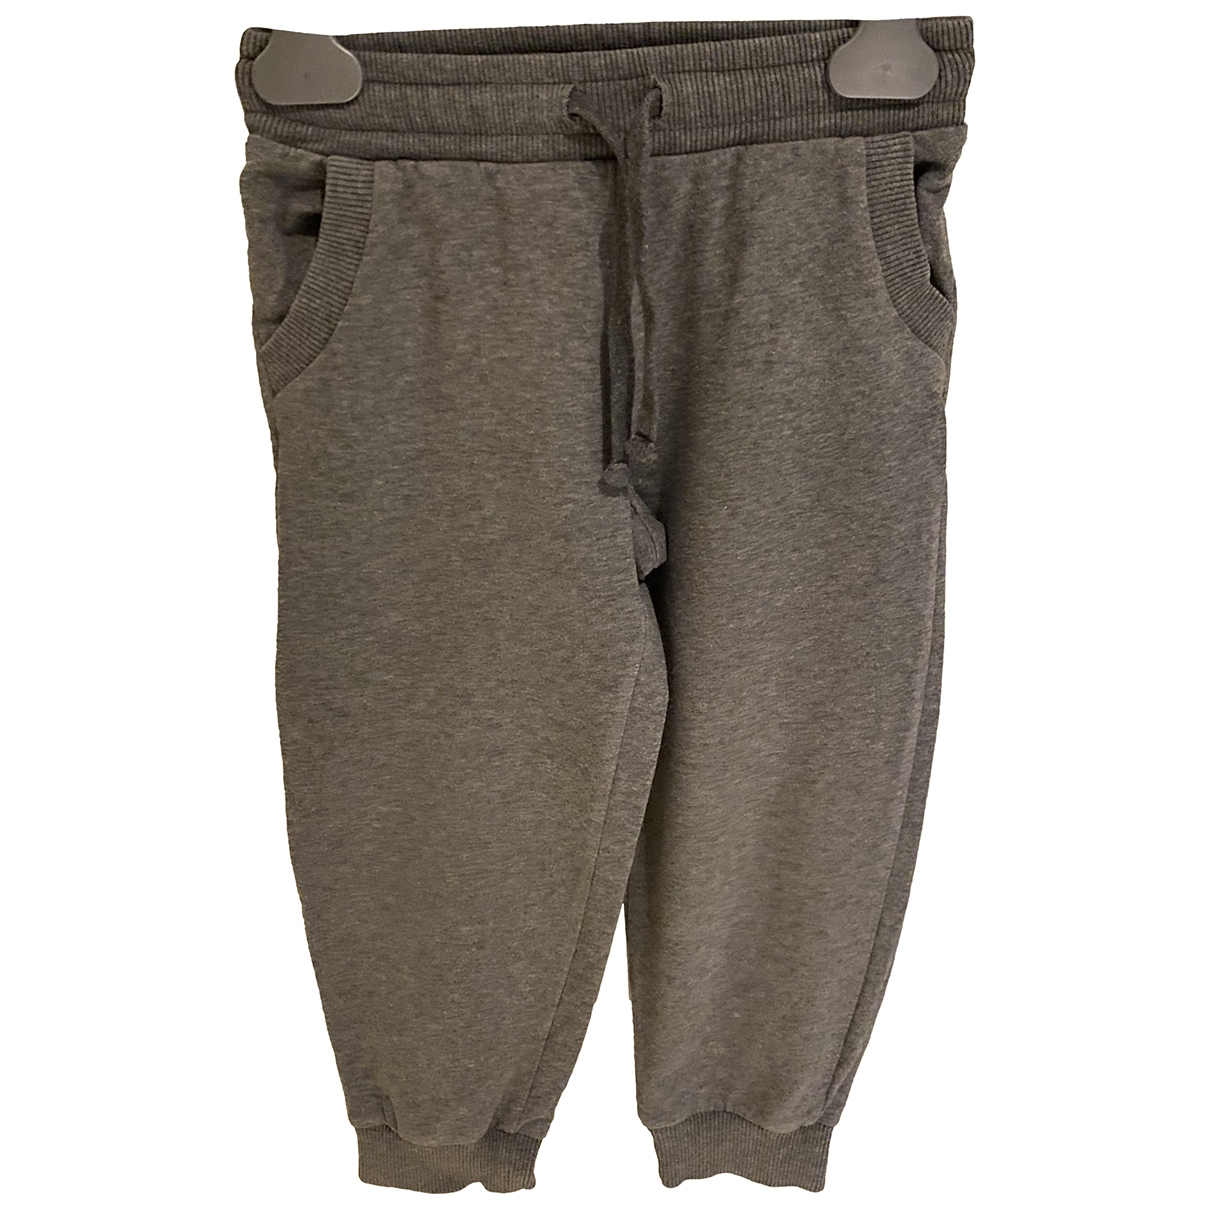 D&g \N Grey Cotton Trousers for Kids 6 years - up to 114cm FR